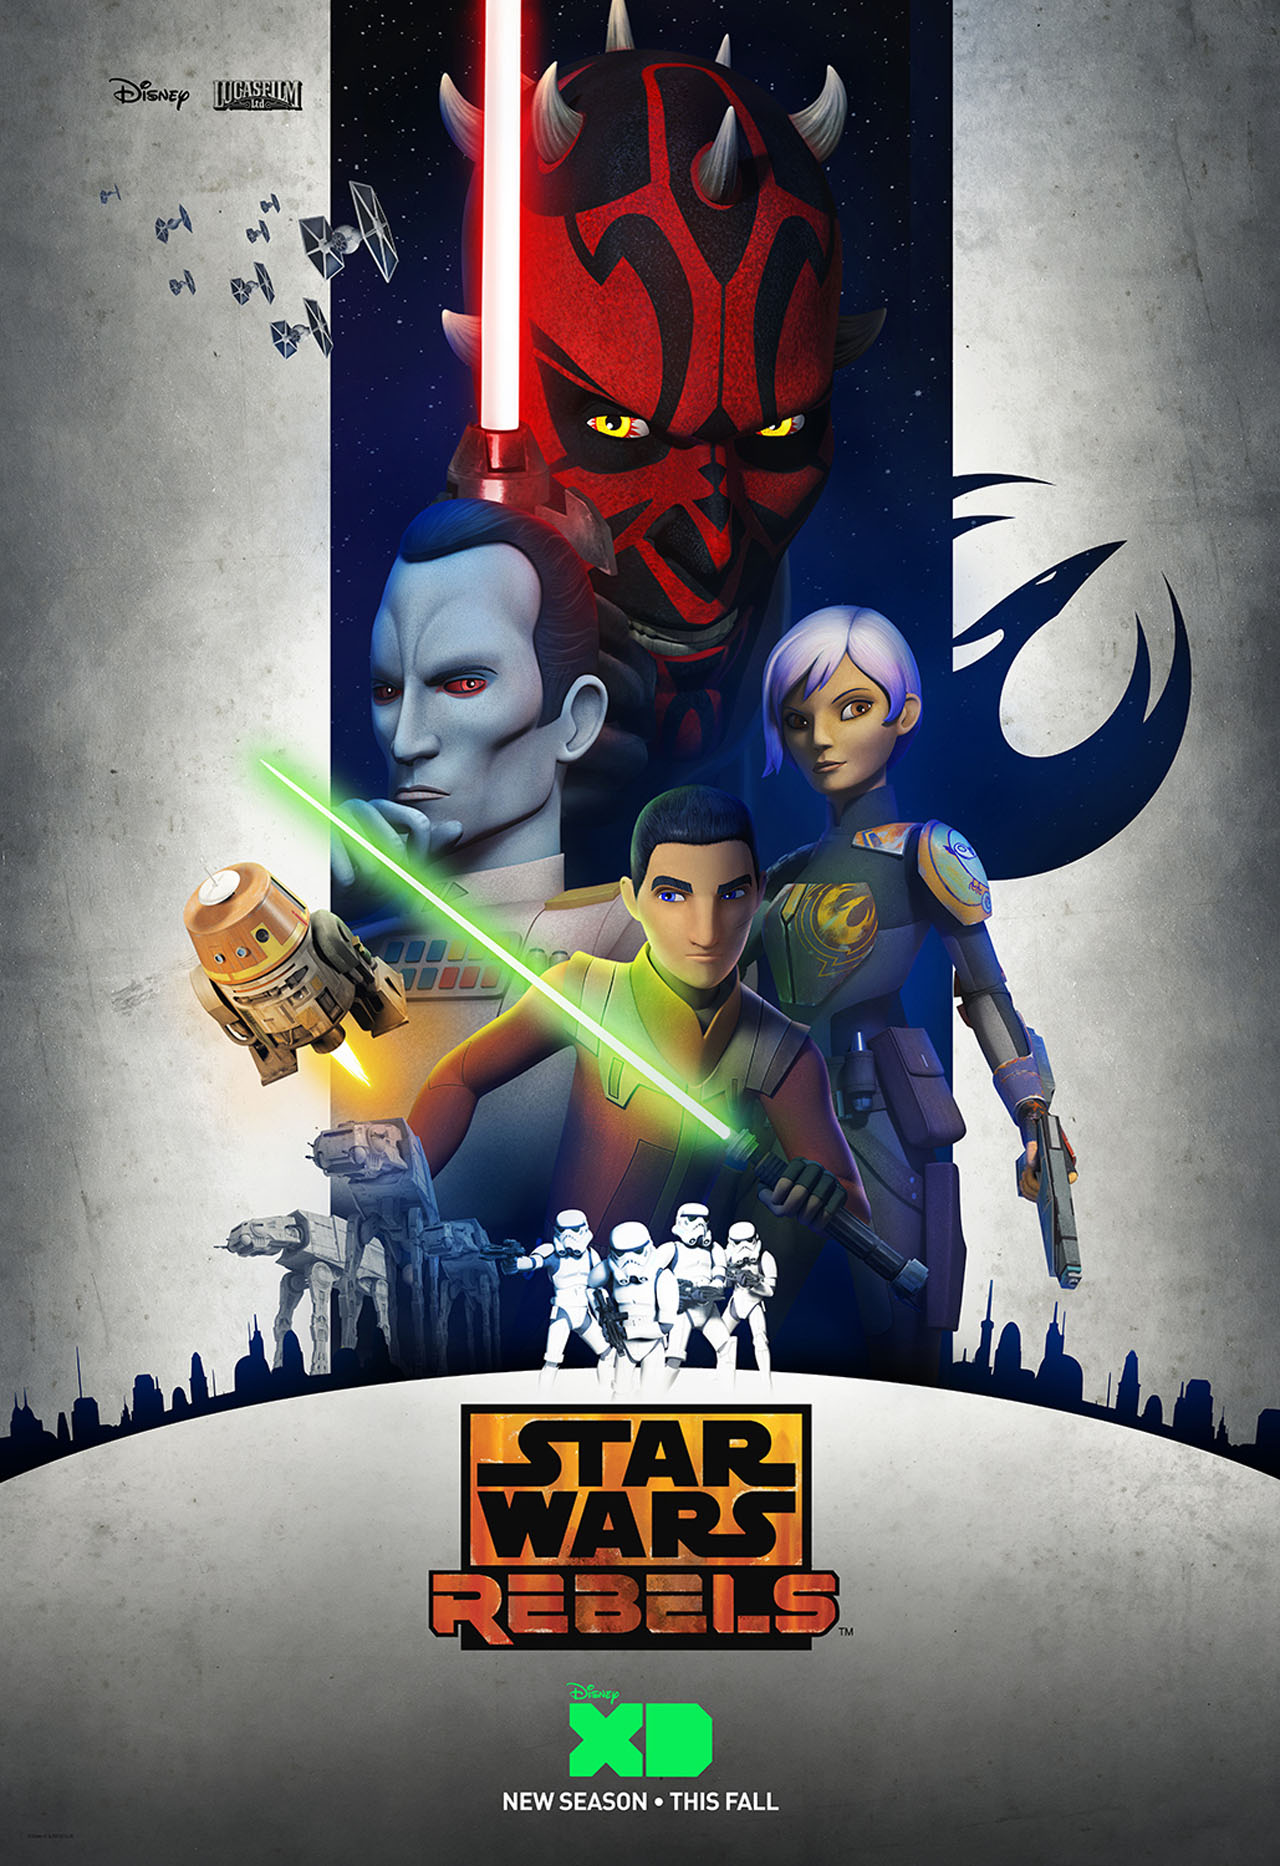 Star Wars Rebels Staffel 3 Trailer & Poster